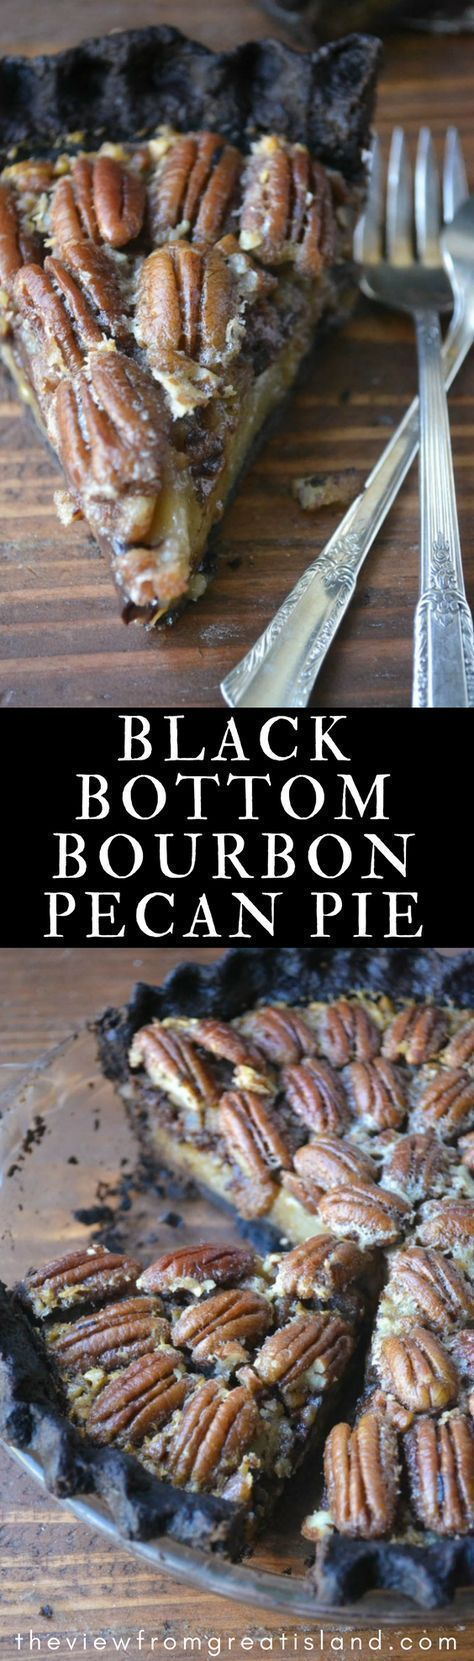 Bourbon Pecan Pie  Fruit Pies Tarts and Galette Recipes  Black Bottom Bourbon Pecan Pie  Fruit Pies Tarts and Galette Recipes Black Bottom Bourbon Pecan Pie  Fruit Pies T...